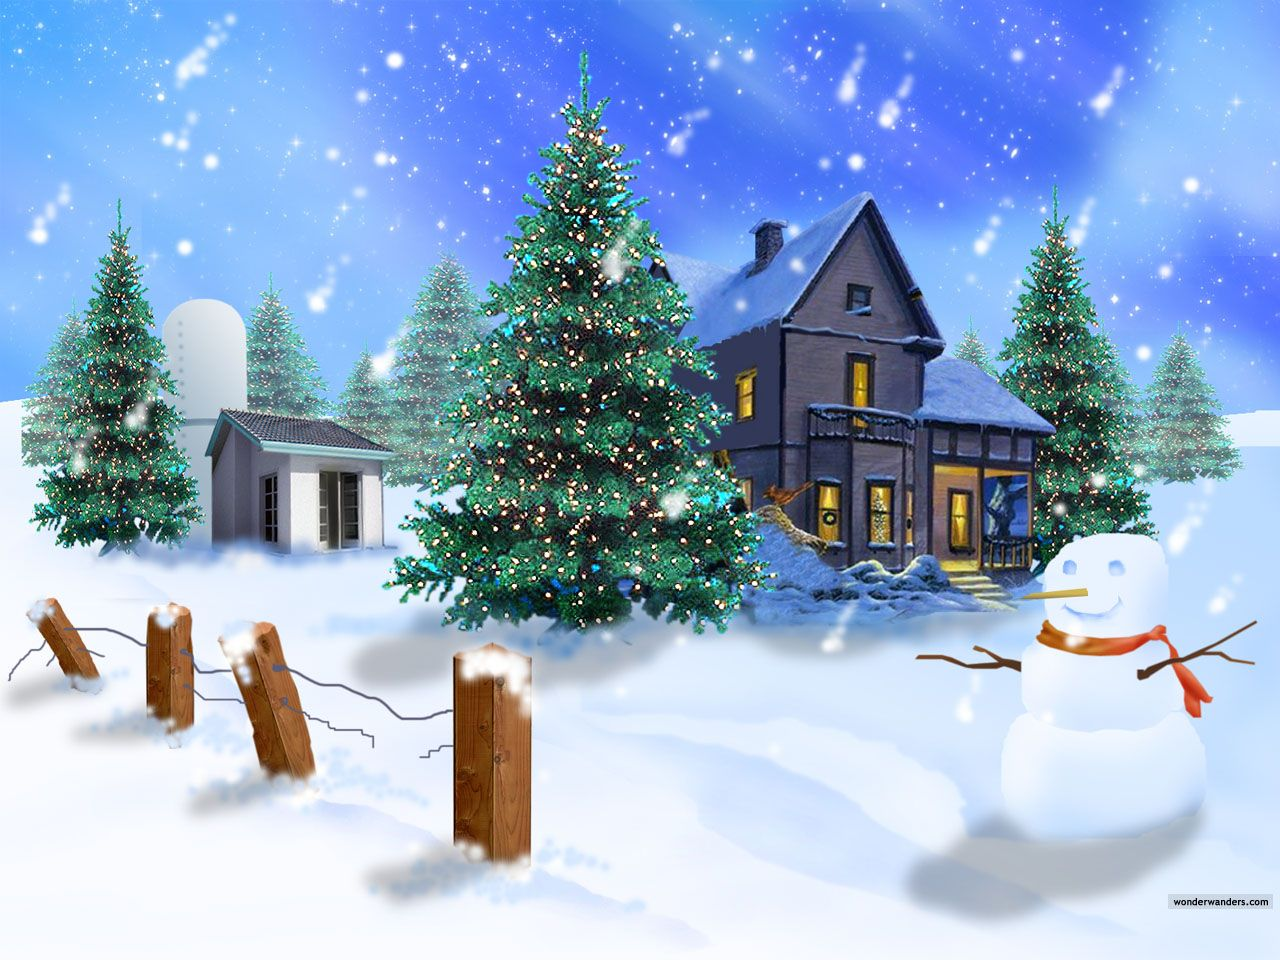 christmas backgrounds collection of wallpapers available for free download decorate your computer desktop backgrounds with beautiful christmas wallpapers